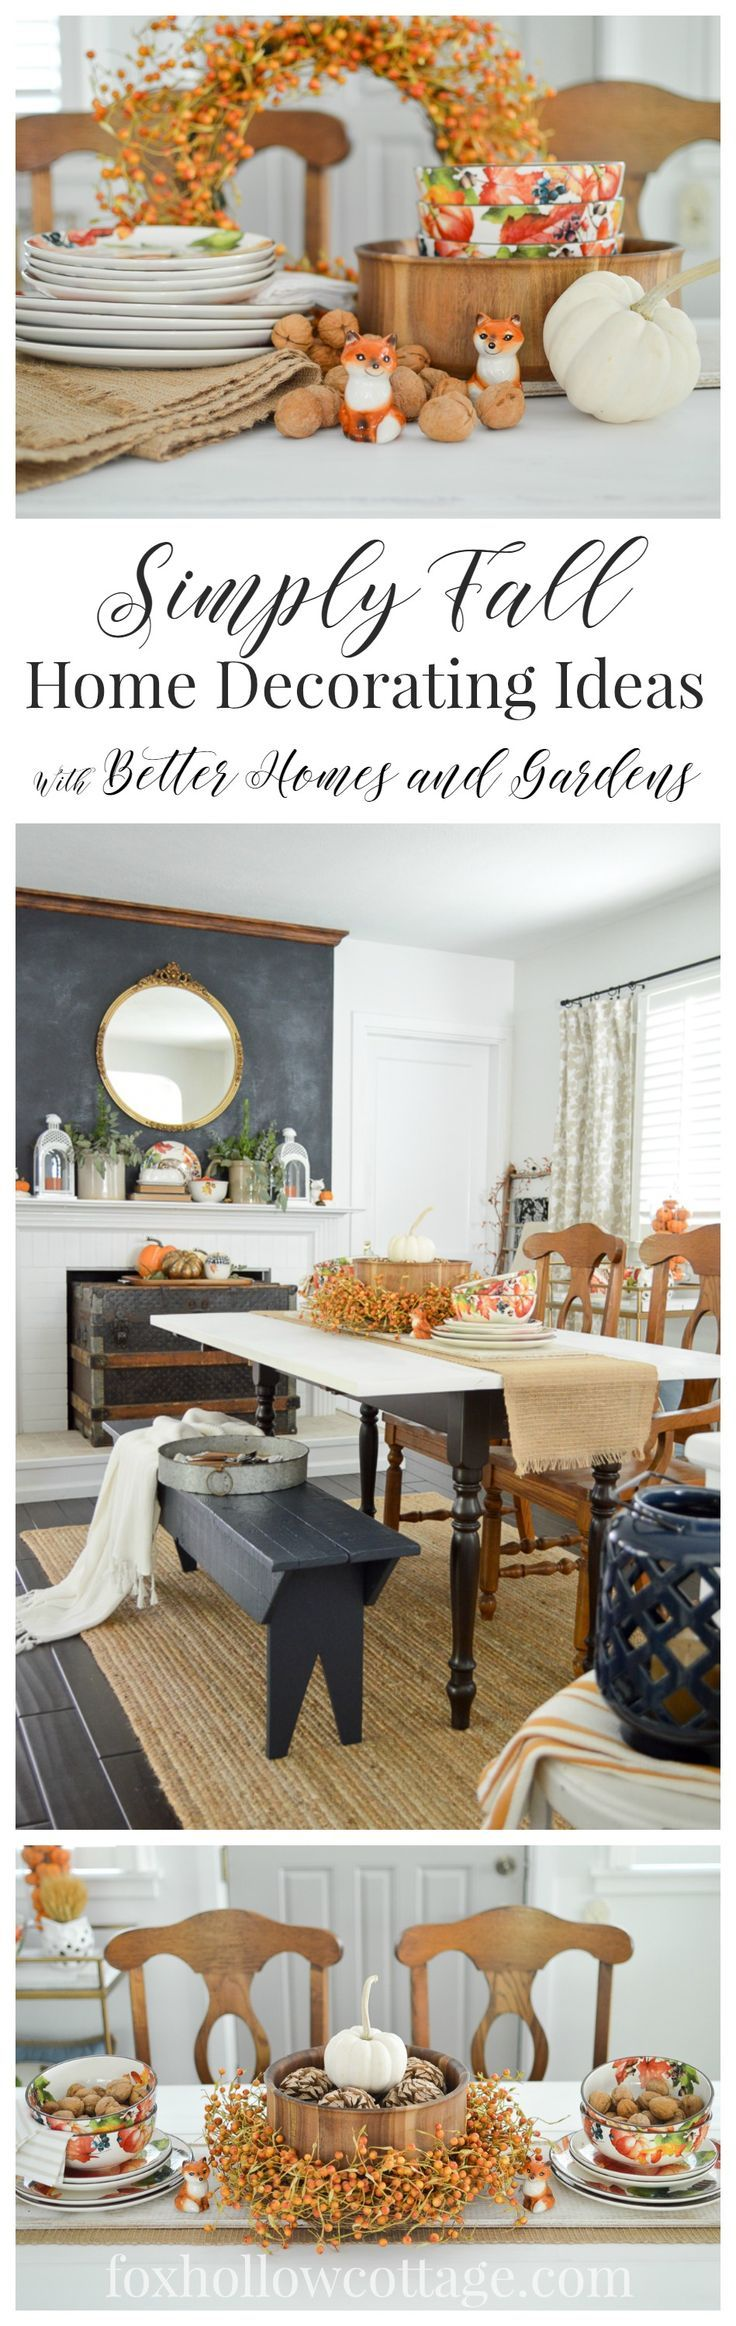 Best images about tablescapes galore on pinterest